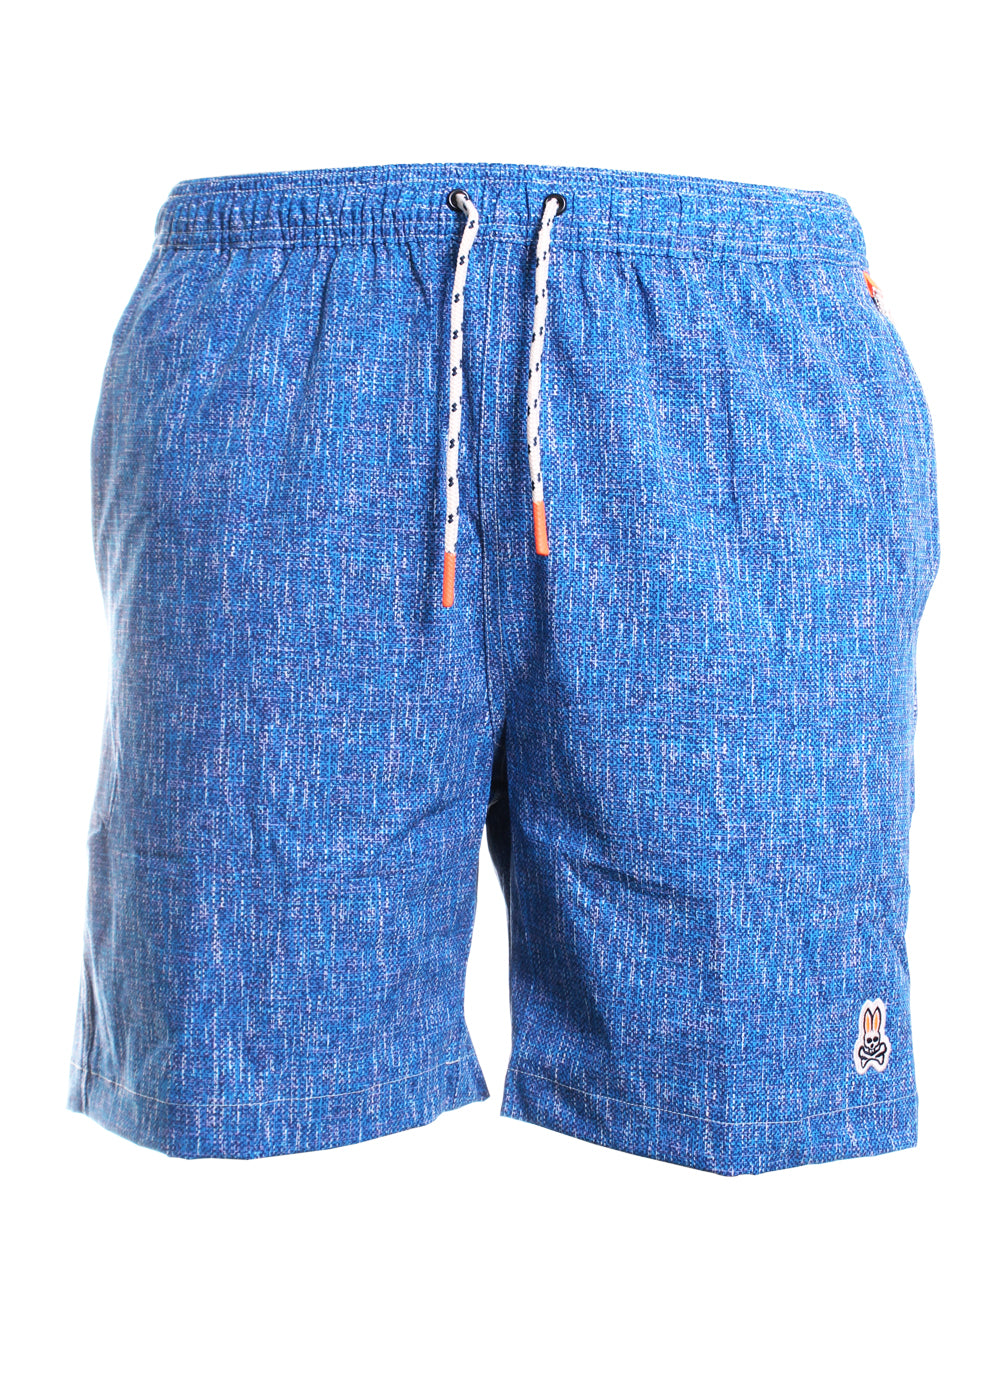 Ikat Print Swim Shorts